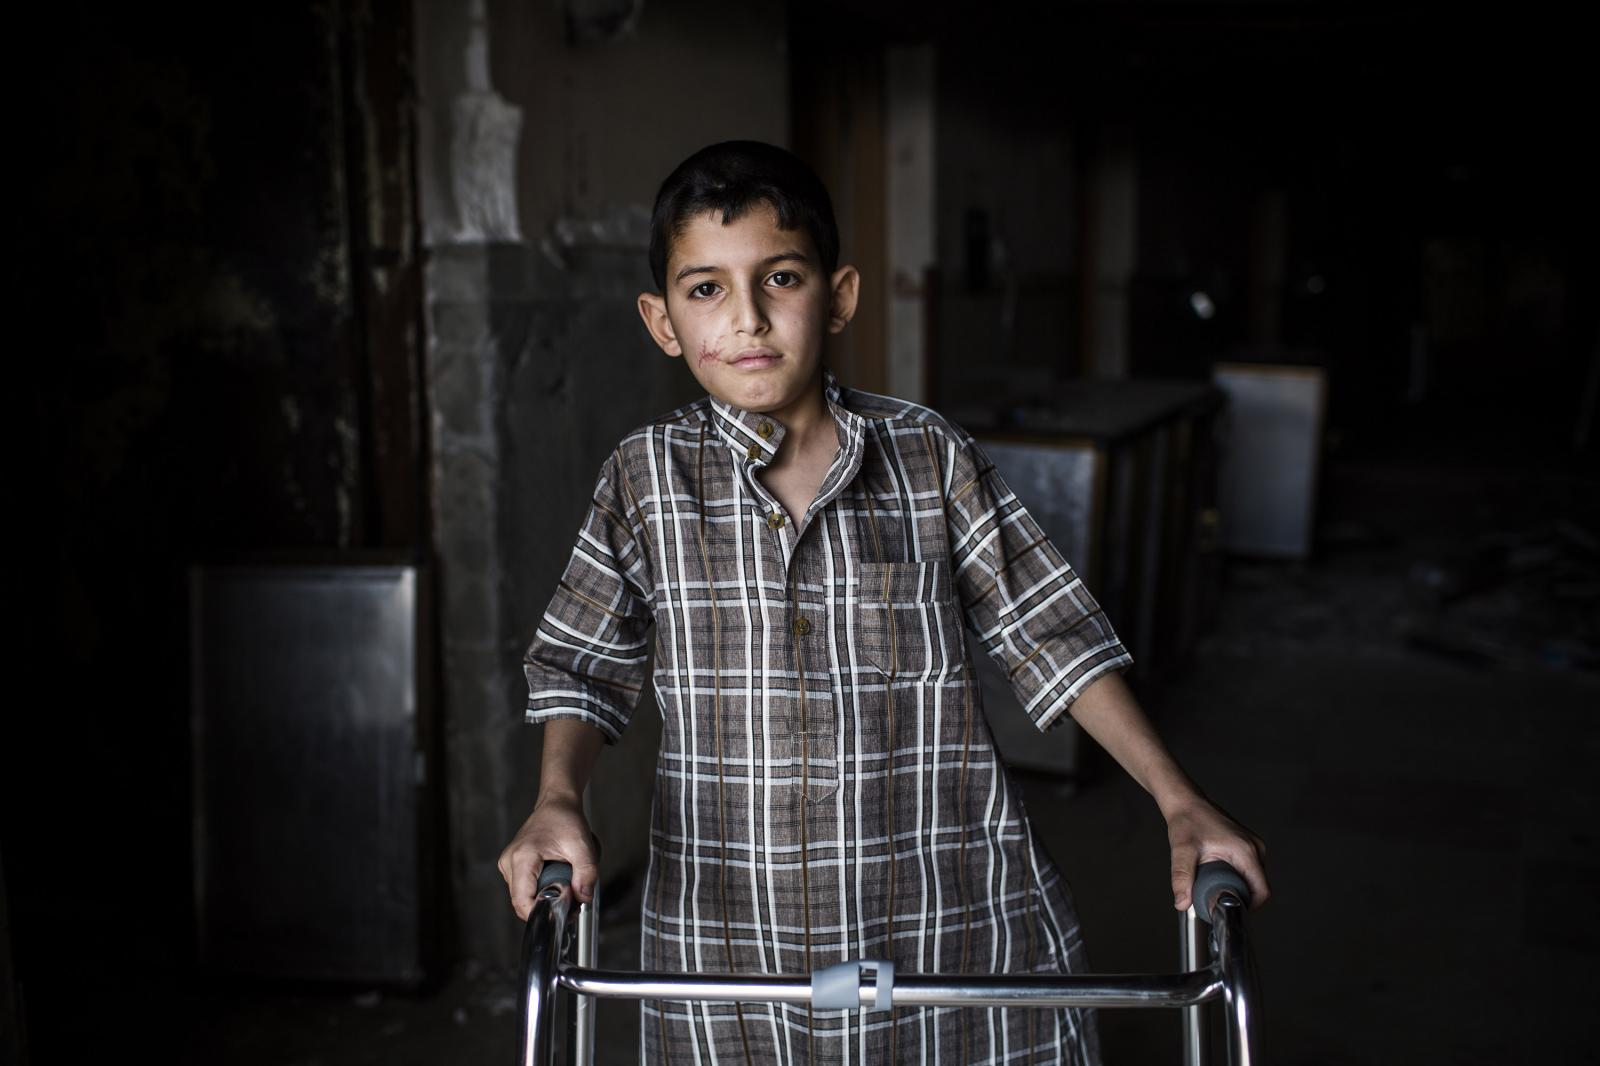 A Portrait of Mohamed Faris, an Iraqi 11 year old. He is from West Mosul. A mortar exploded in front of his house. His sister died and his father got injured. Post-op hospital in Hamdaniya, Iraq 2017. Diego Ibarra Sánchez for MSF